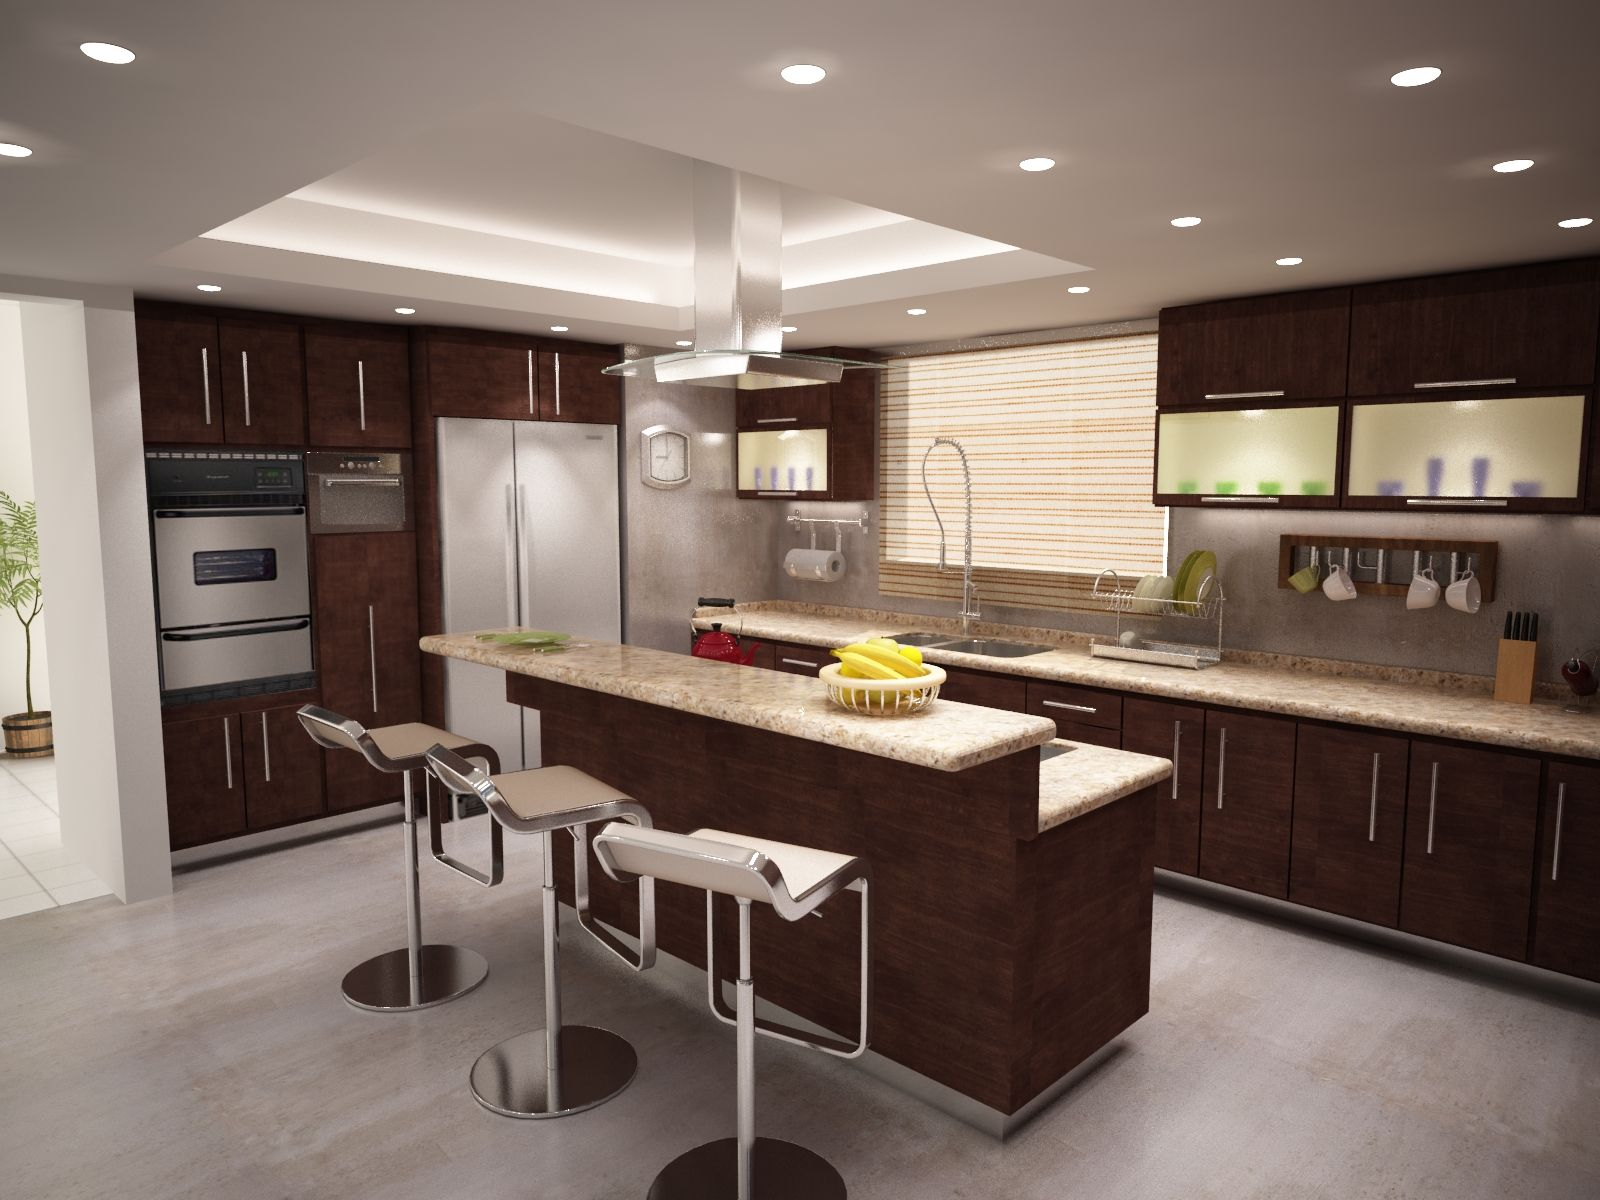 Kitchen design for mancera residence in tijuana d kitchens